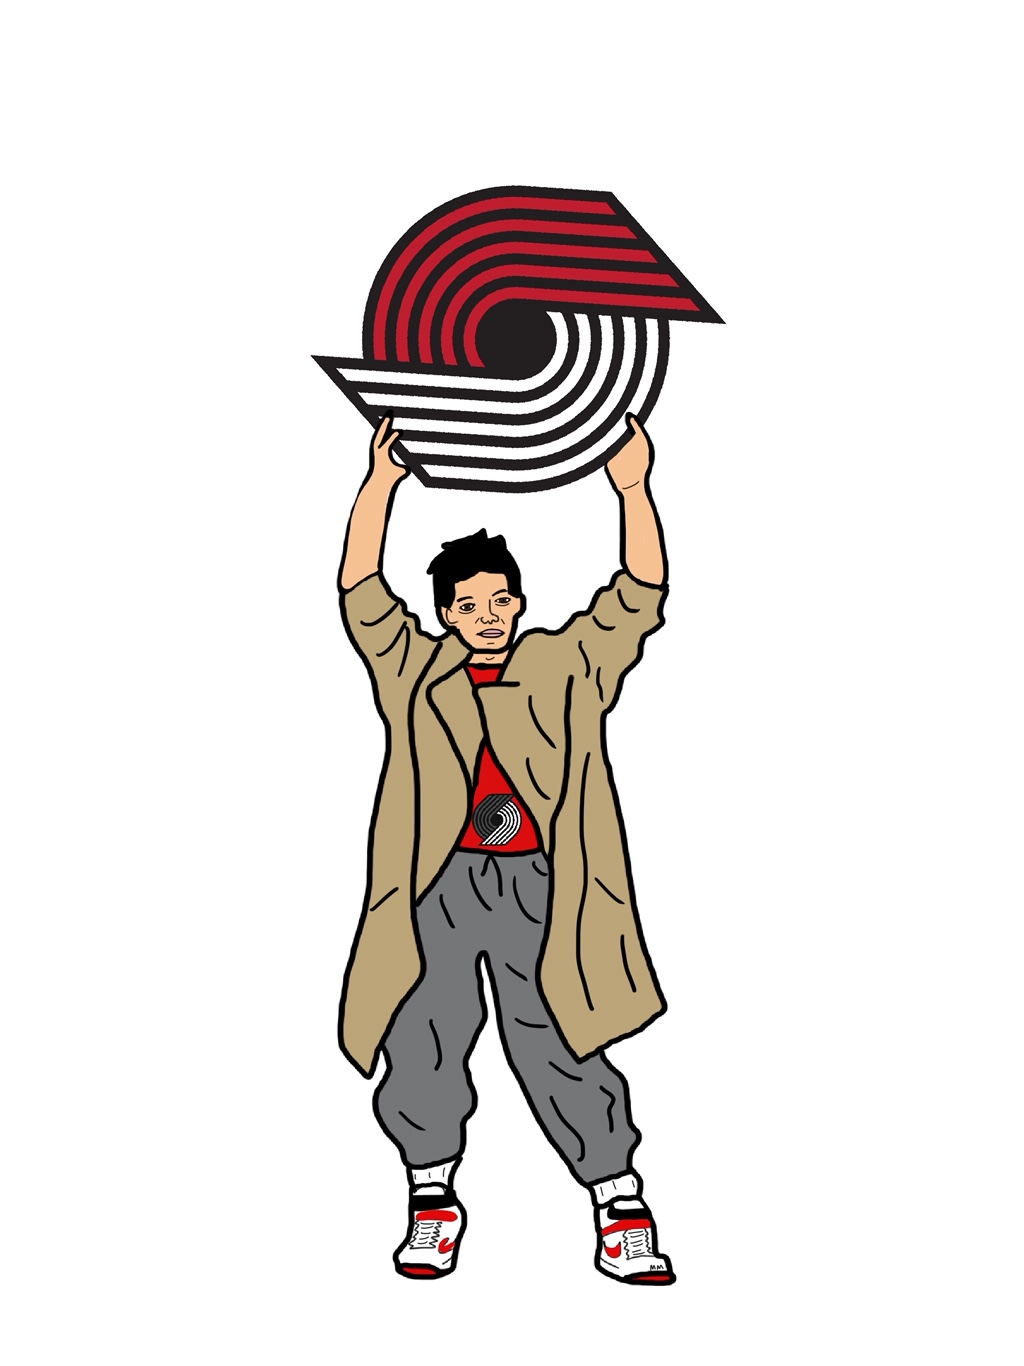 Lloyd Dobbler For The Blazers